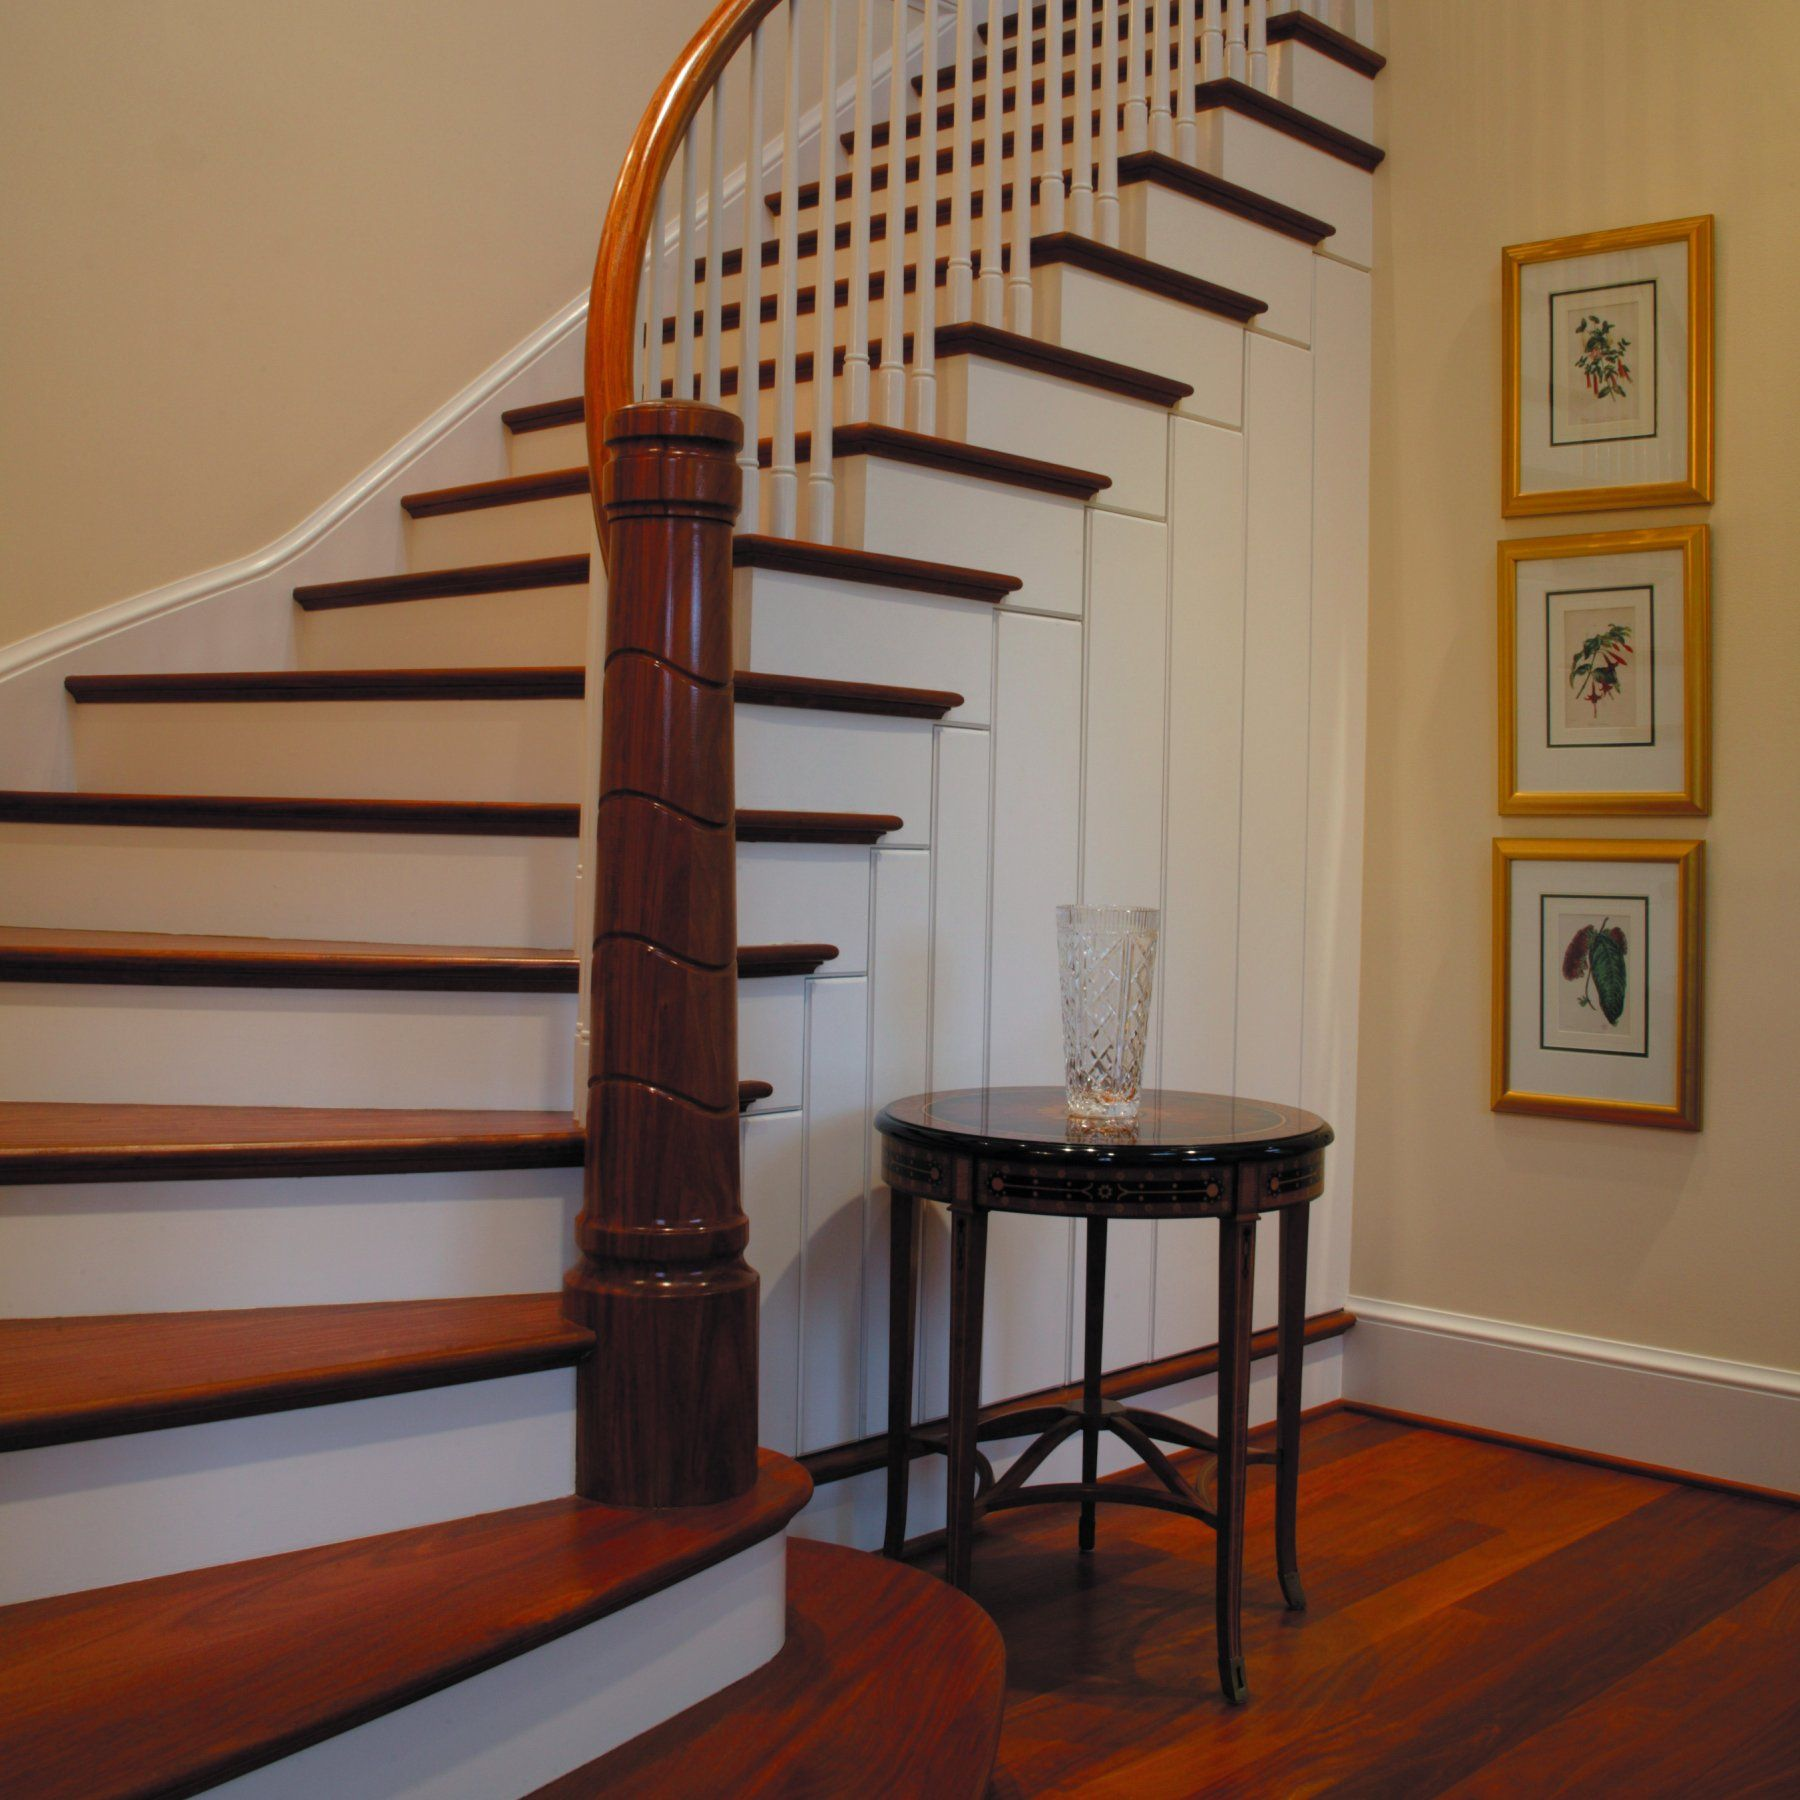 58 Cool Ideas For Decorating Stair Risers: Alluring Design Idea Of Cool Staircase With Brown Wooden